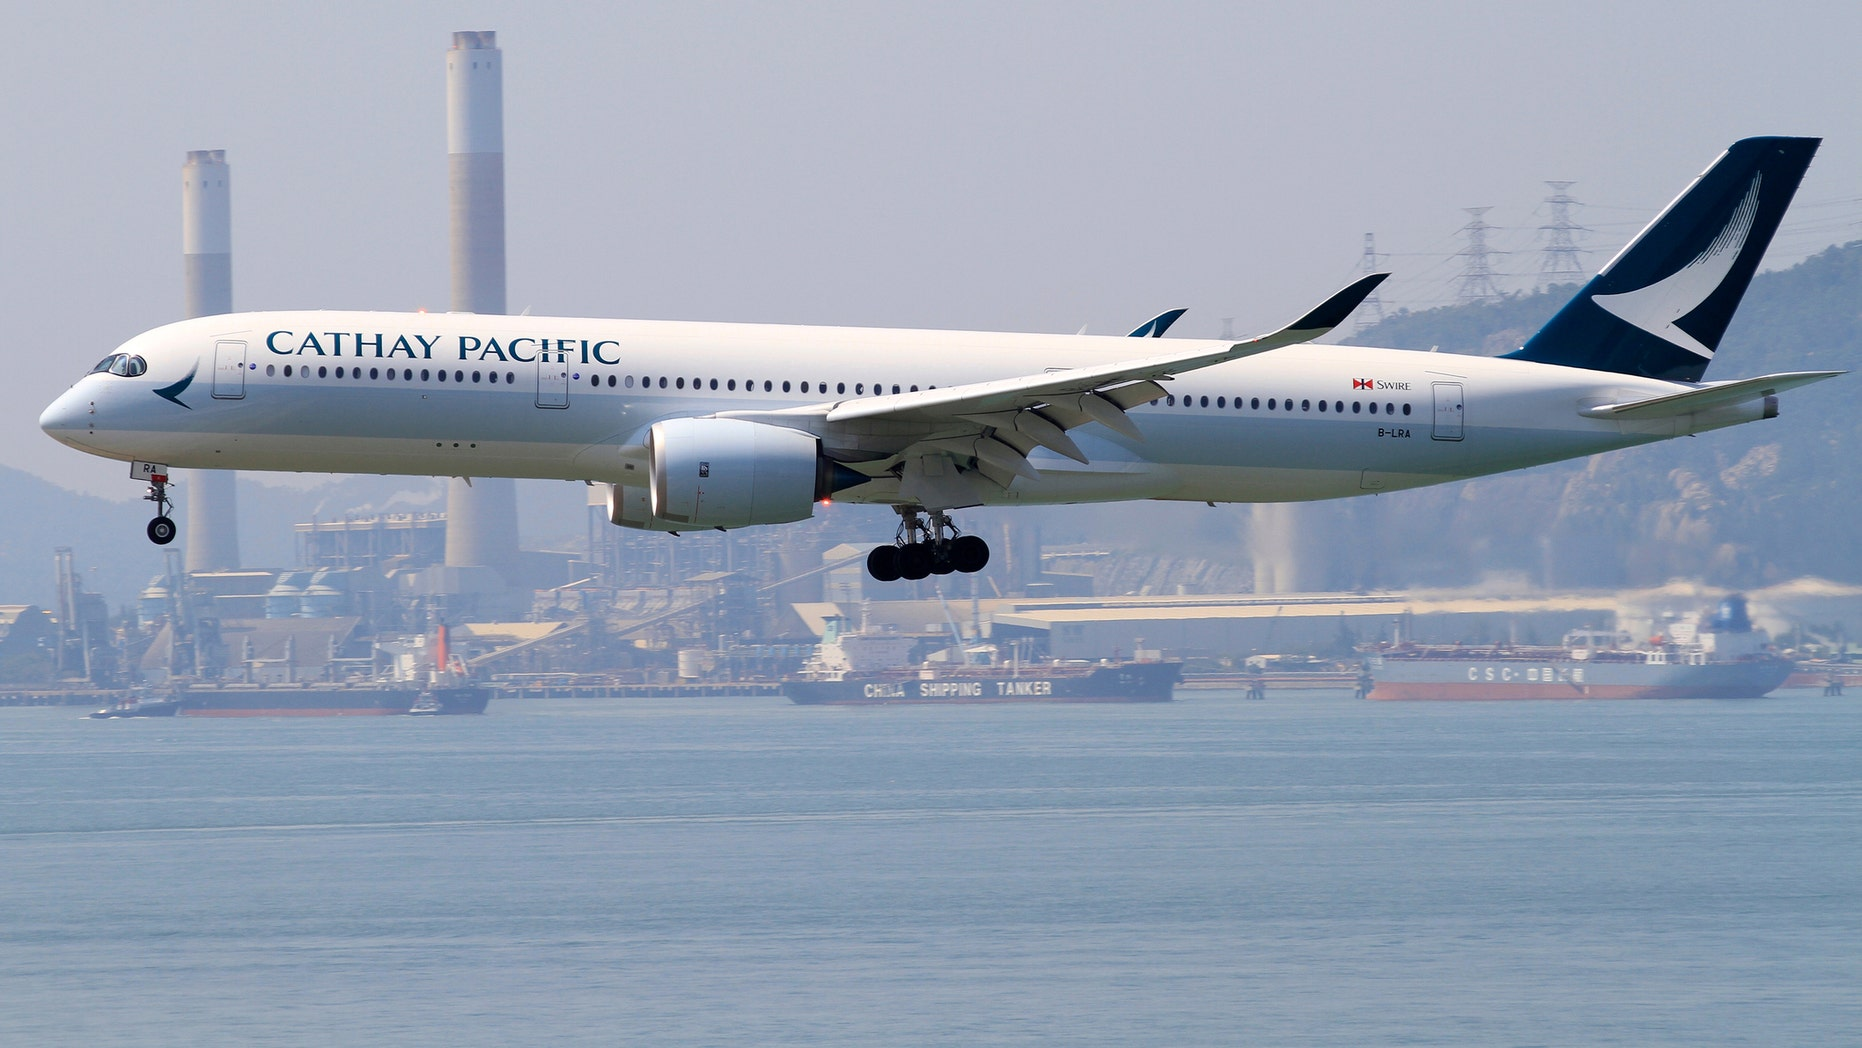 German aviation safety firm JACDEC has ranked Hong Kong's Cathay Pacific as the world's safest airline.